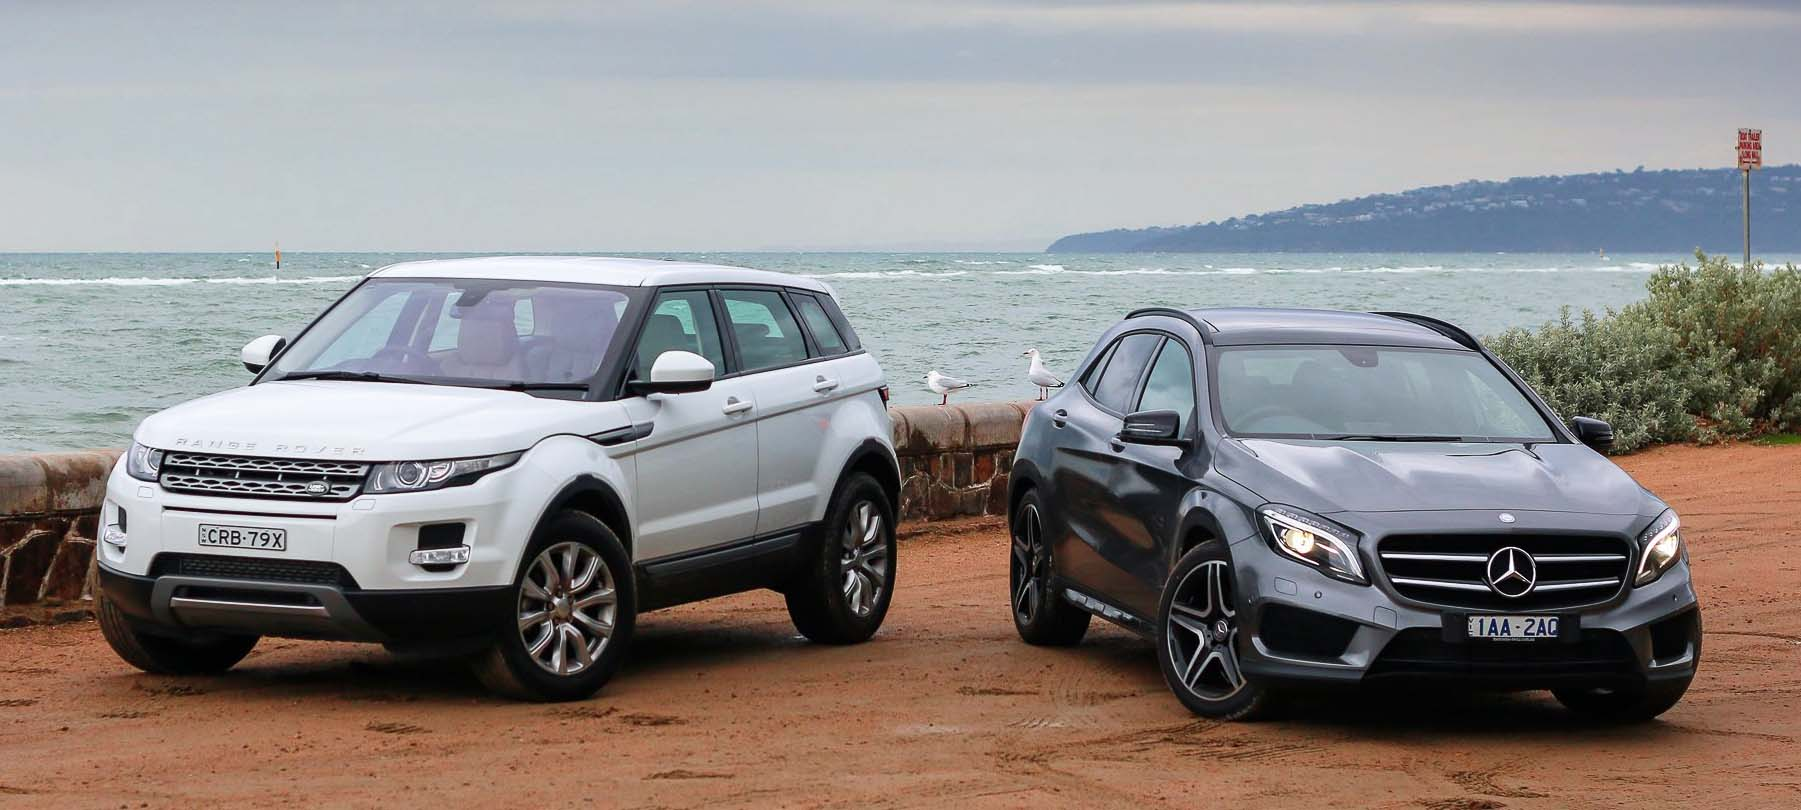 Mercedes and Range rover